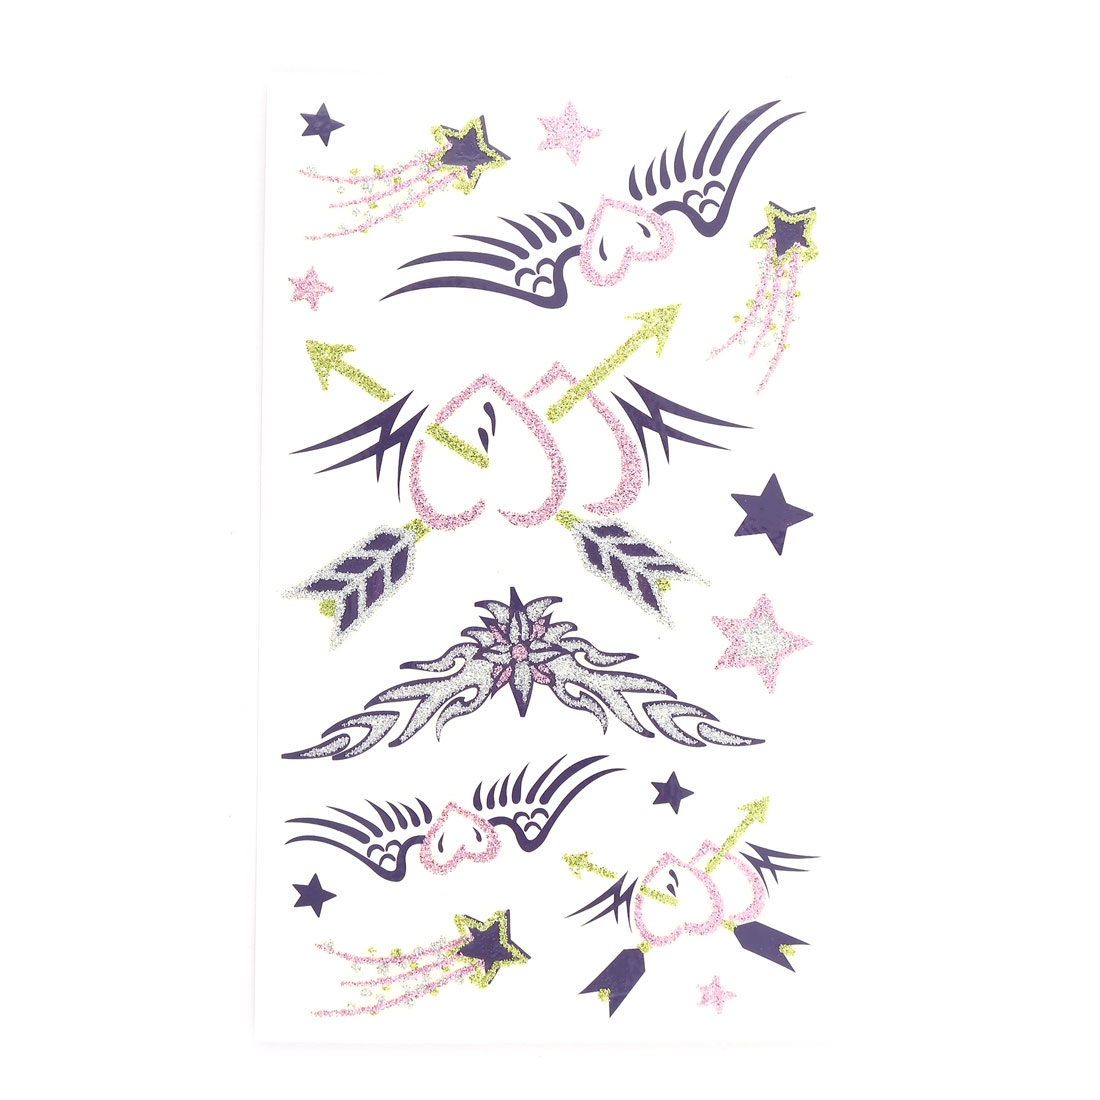 Lady Heart Star Pattern Body Art Arm Paints Sticker Decal Temporary Tattoo Sheet